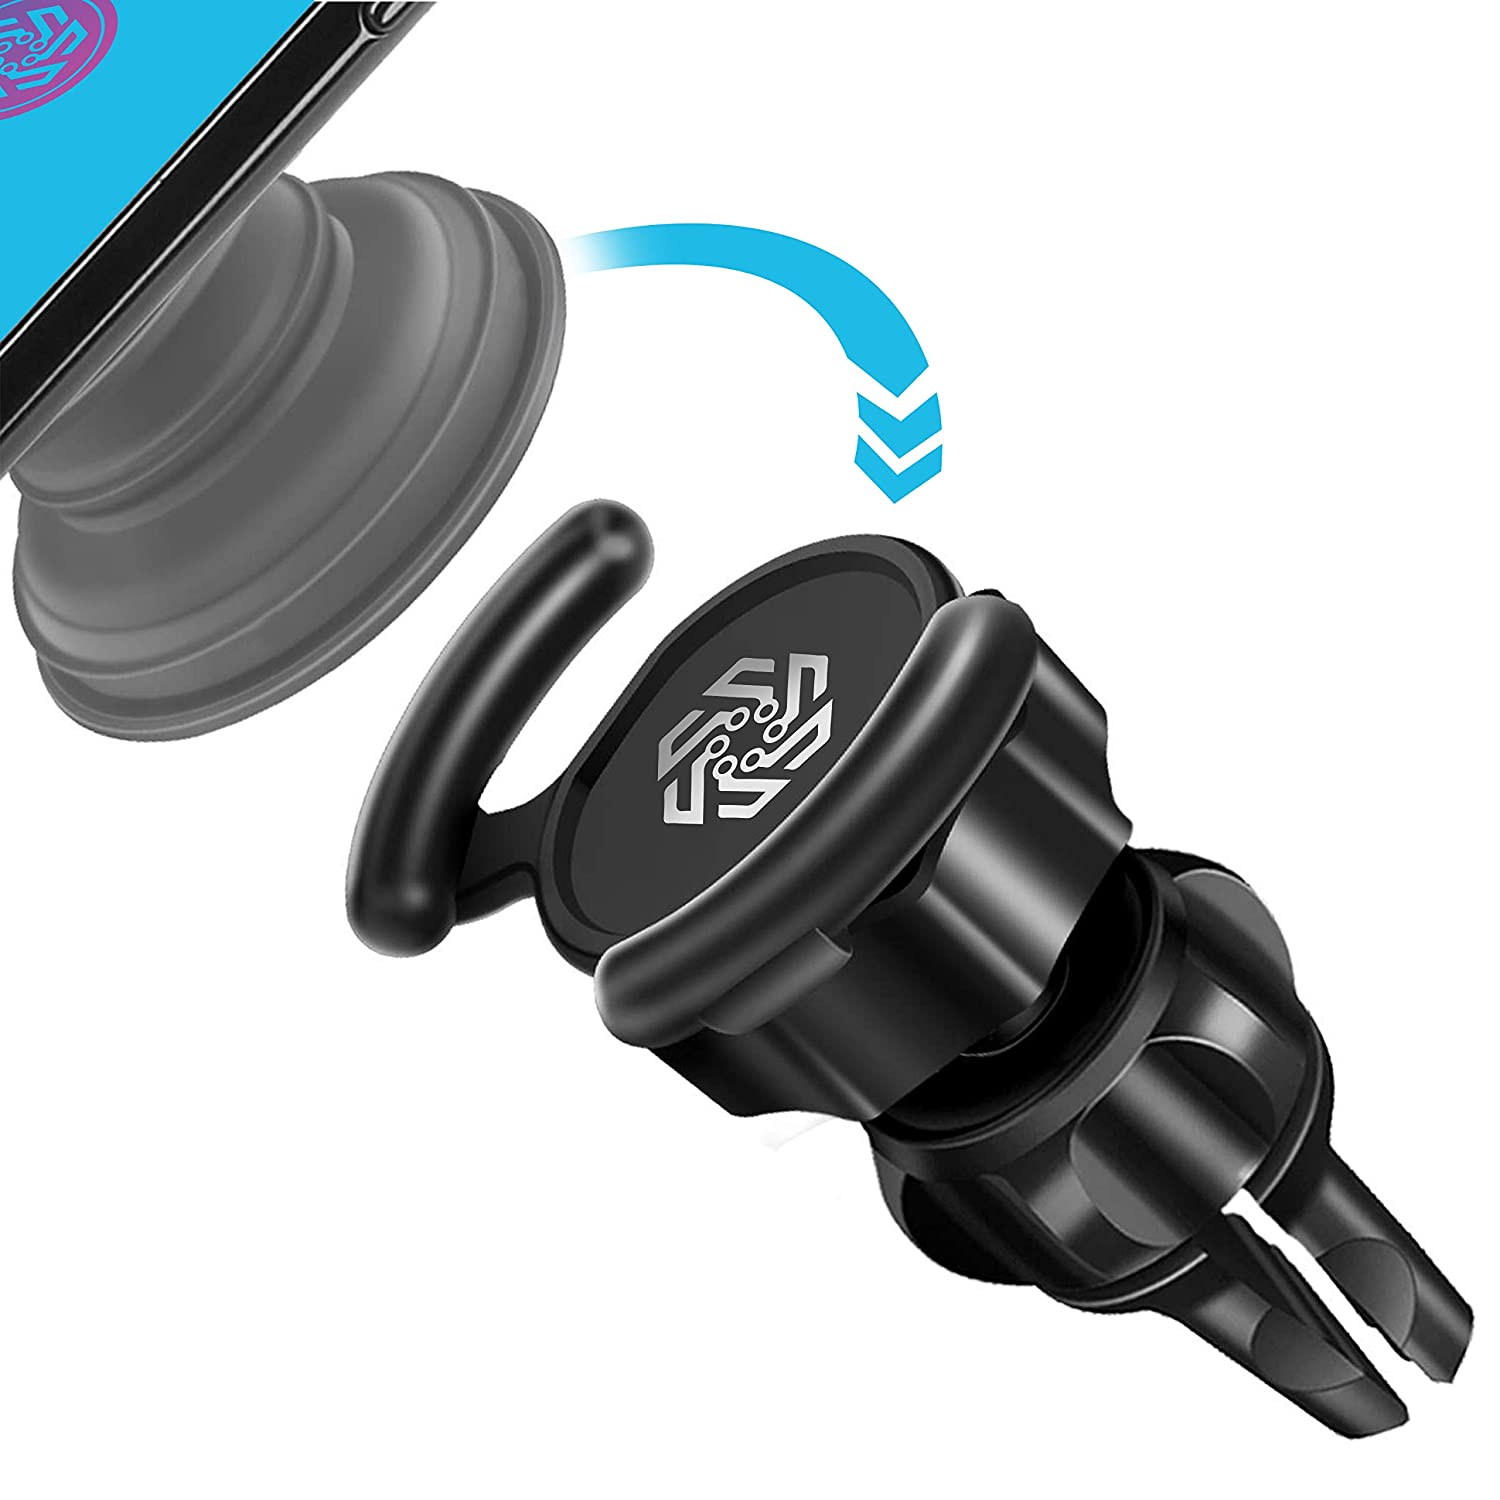 PREON UNLIMITED Pop Clip Car Mount for Socket - 360° Full Rotation Air Vent Car Mount with Adjustable Switch Lock Compatible with iPhone X, XS, XS Max, XR, Samsung Galaxy Note 9/S9+ FCX-1 Pro Mount